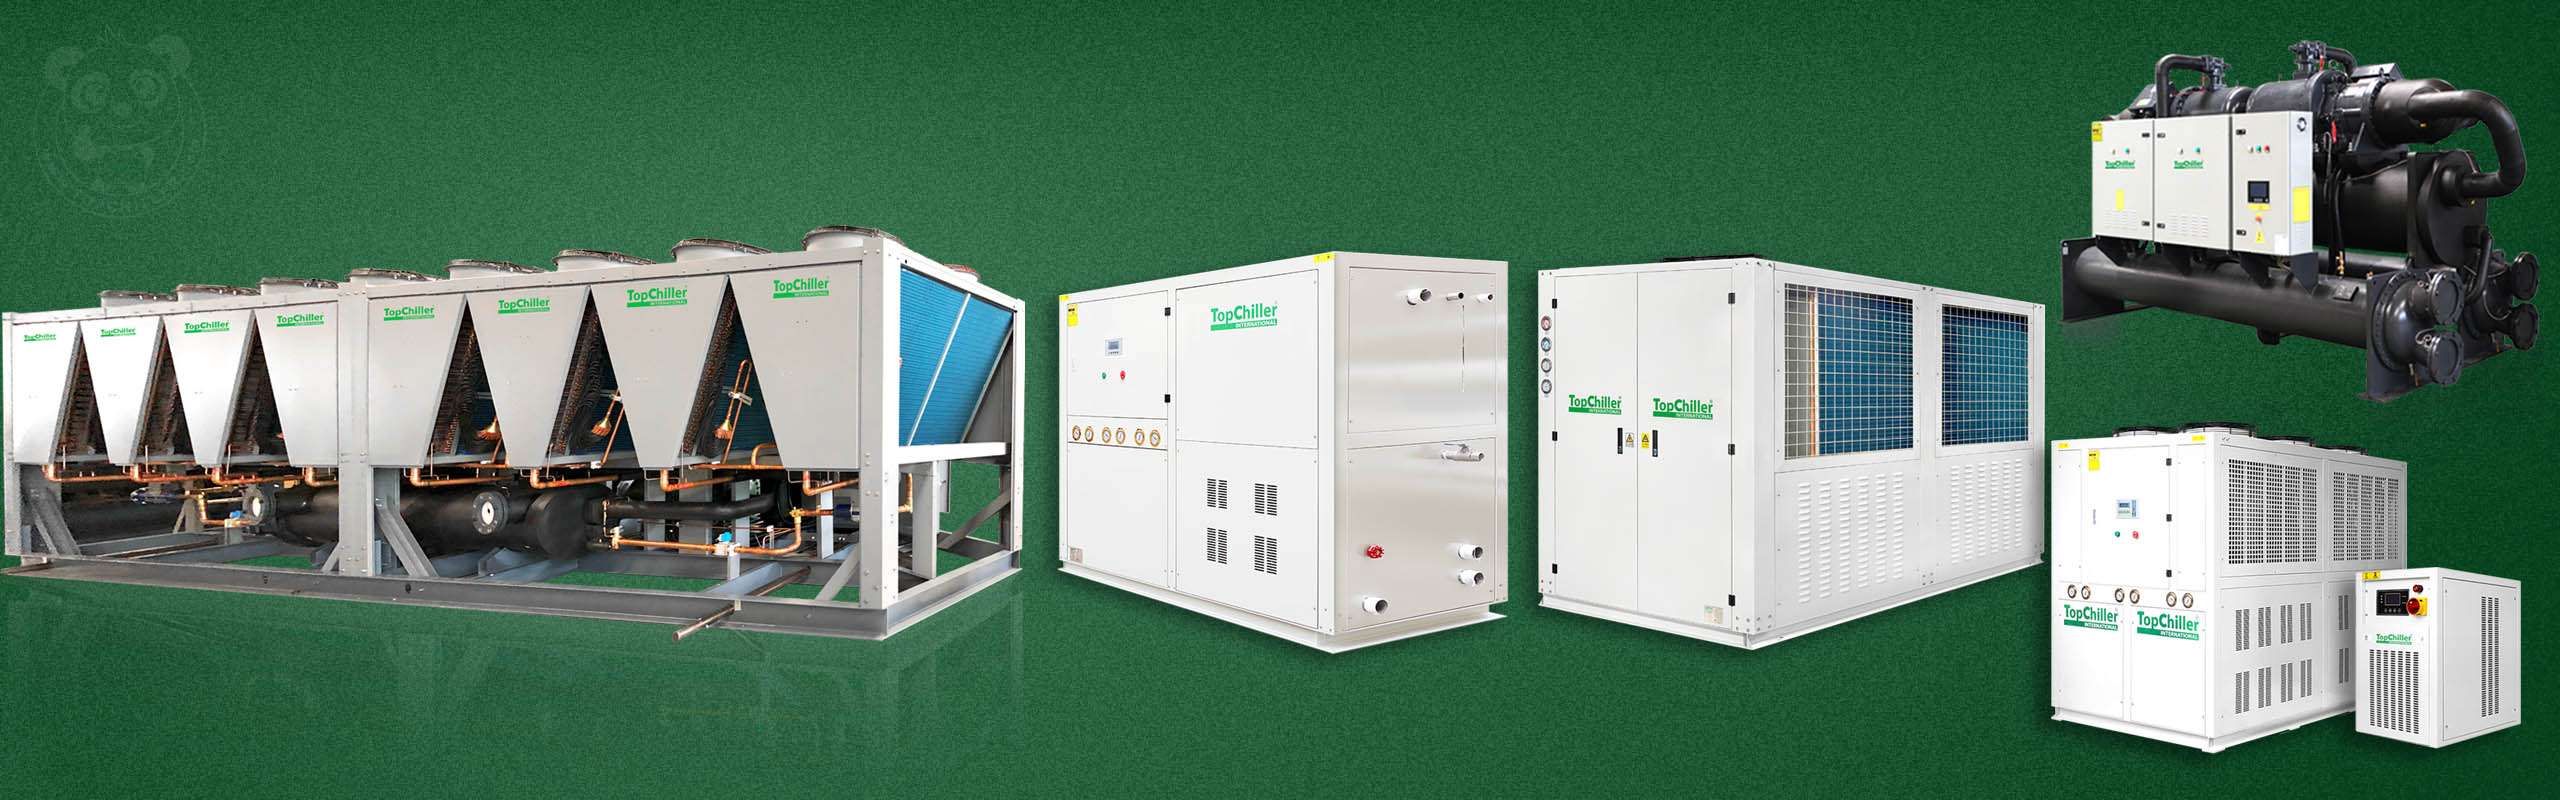 TopChiller Air Cooled Chiller and Water Cooled Chiller